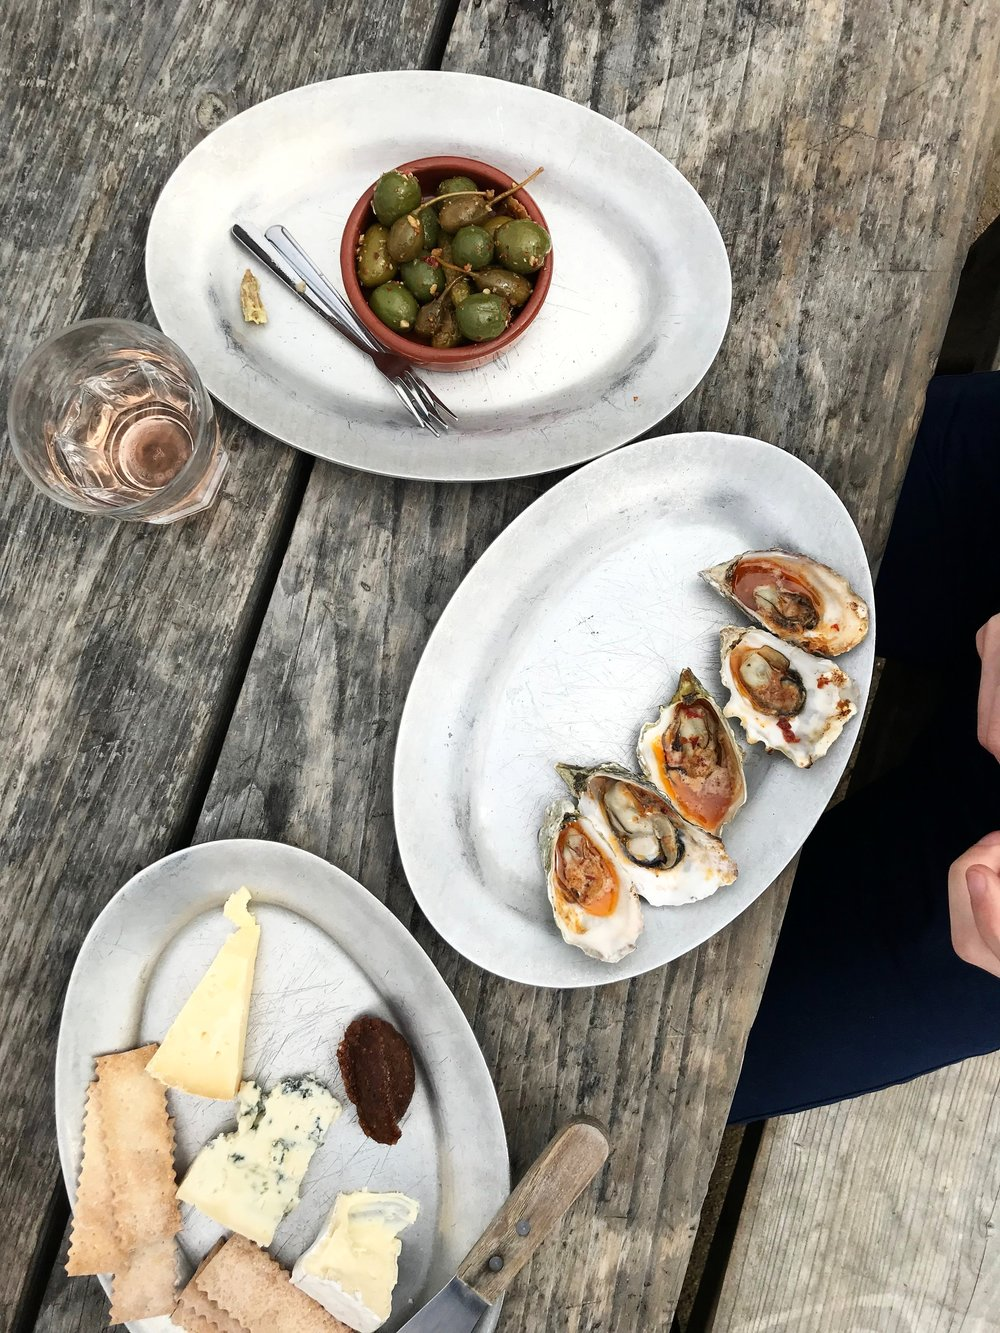 Olives, Cheese plate & baked oysters